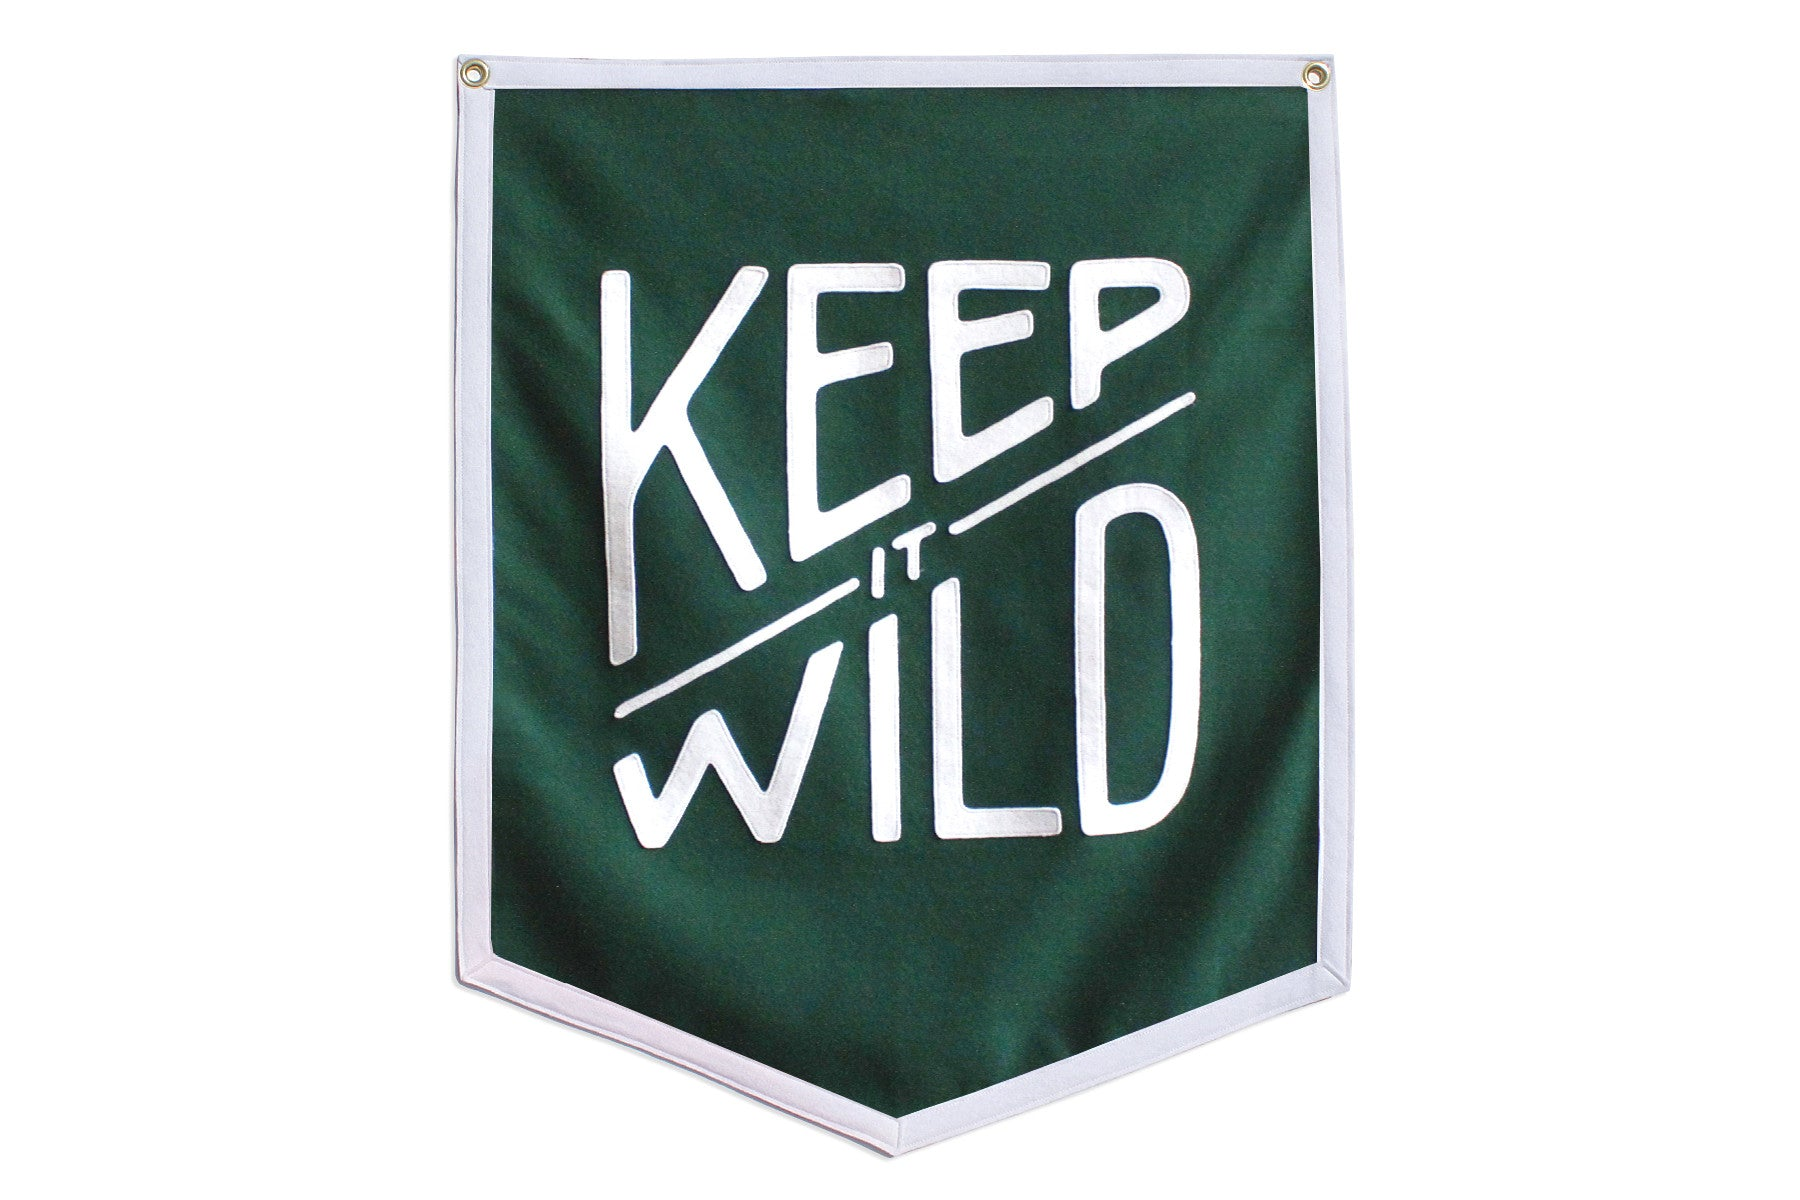 Oxford Pennant Keep It Wild Championship Banner